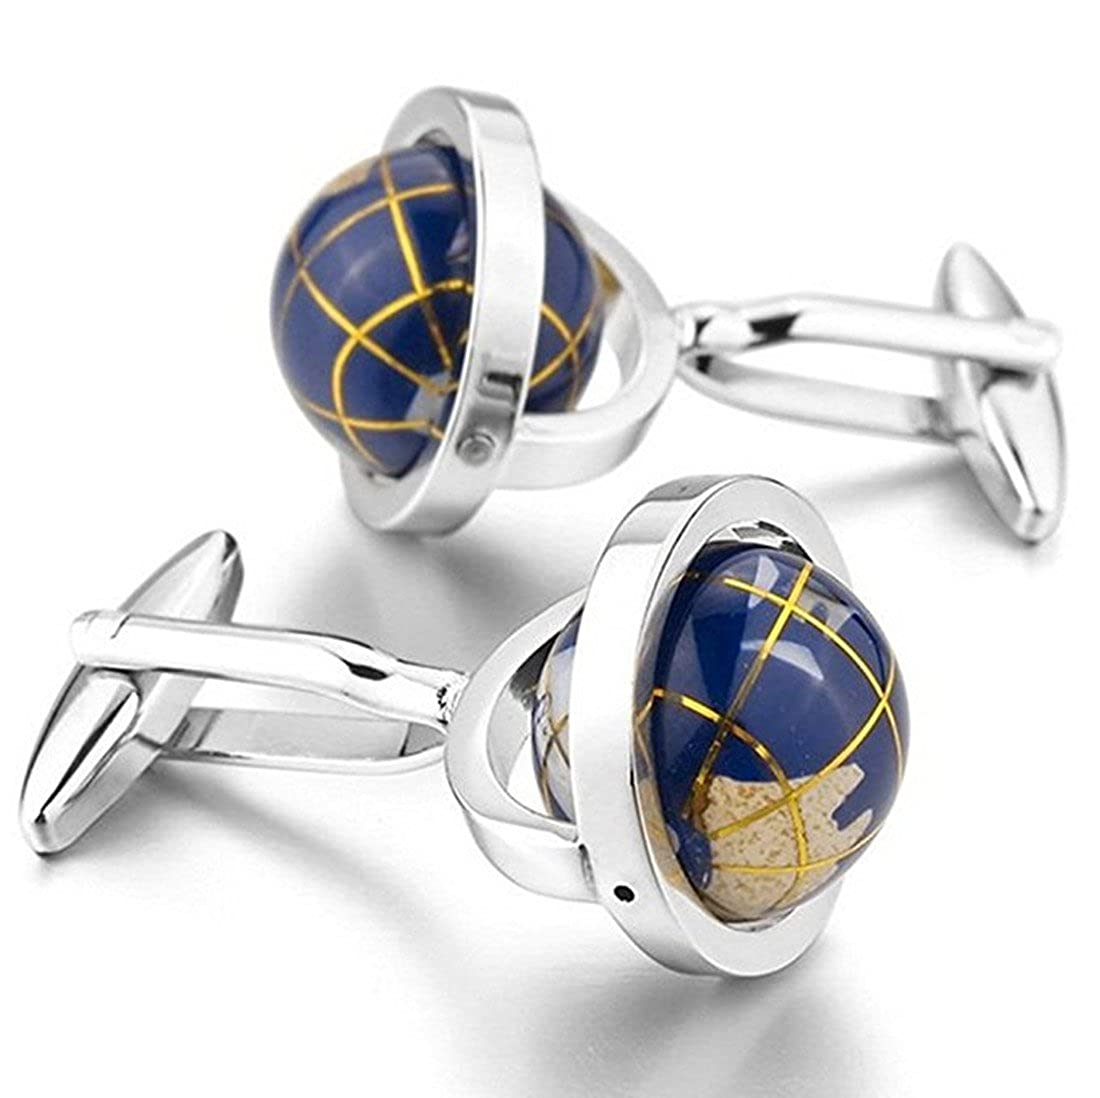 LBFEEL Really Spins Rhodium Plated Blue Globe Earth Cufflinks for Men with a Gift Box 10022435